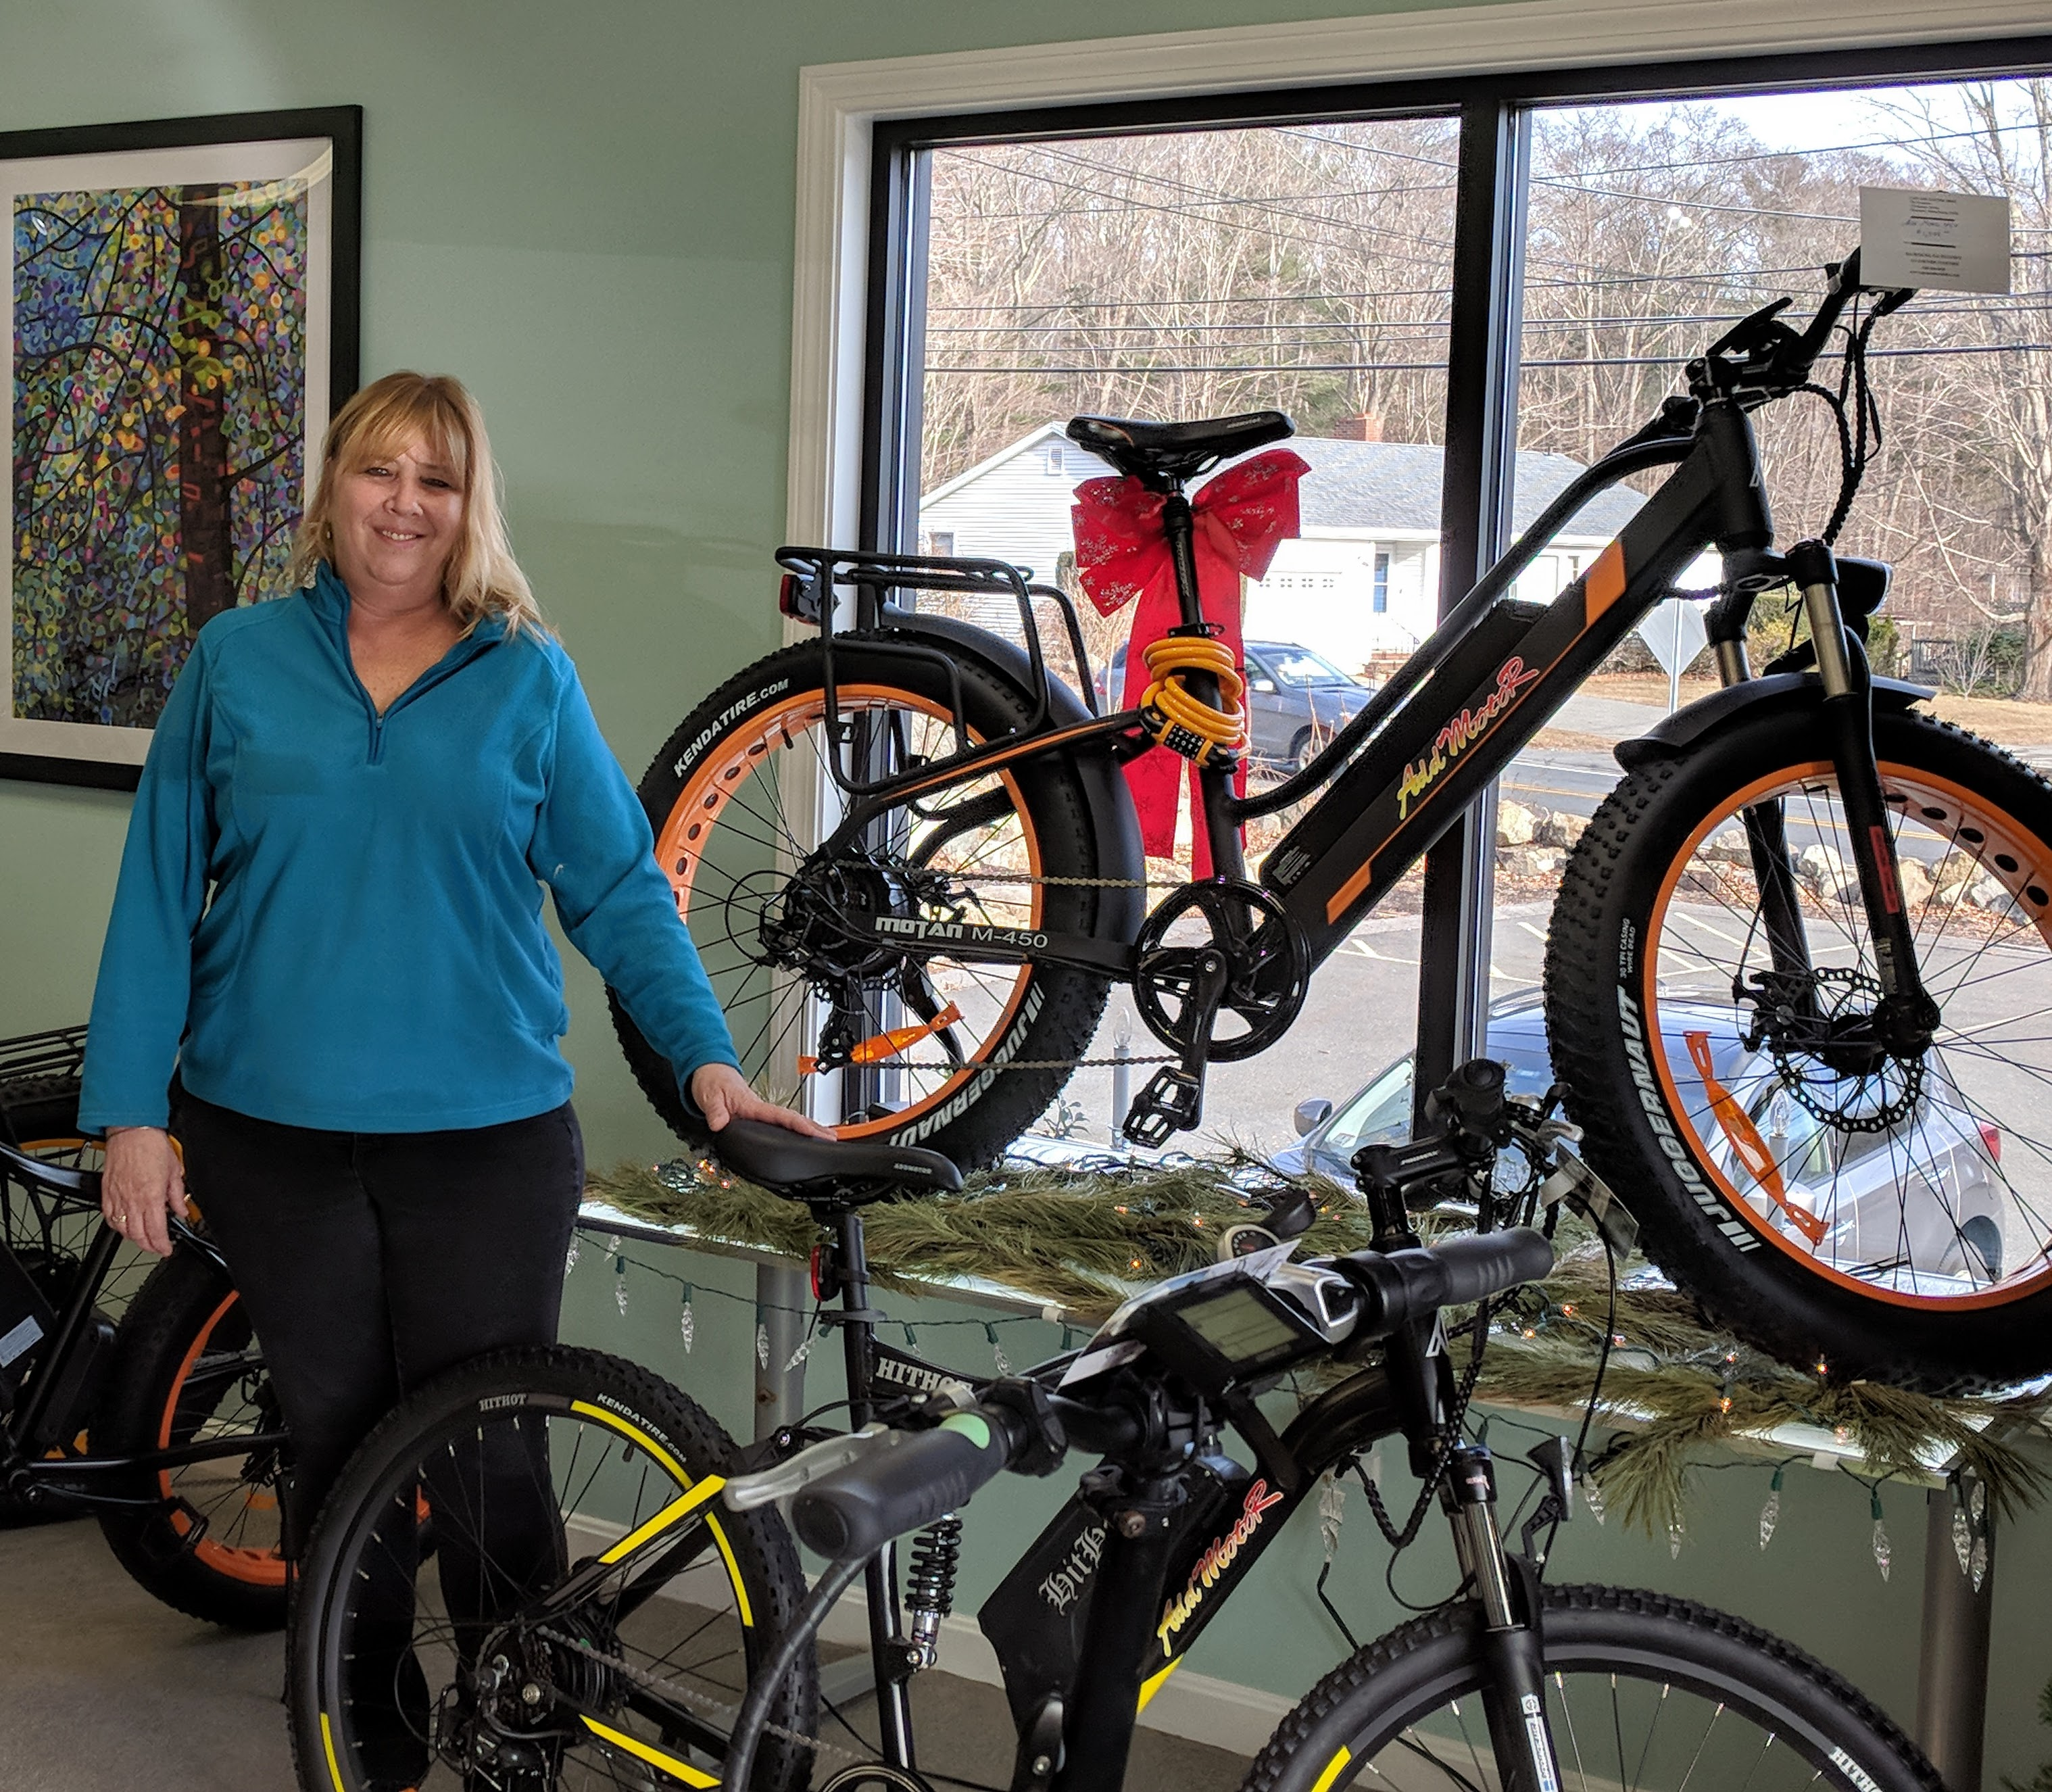 Owner Kathy Reed_Cape Ann Electric Bikes_buy or rent_20181215_© c ryan (4)